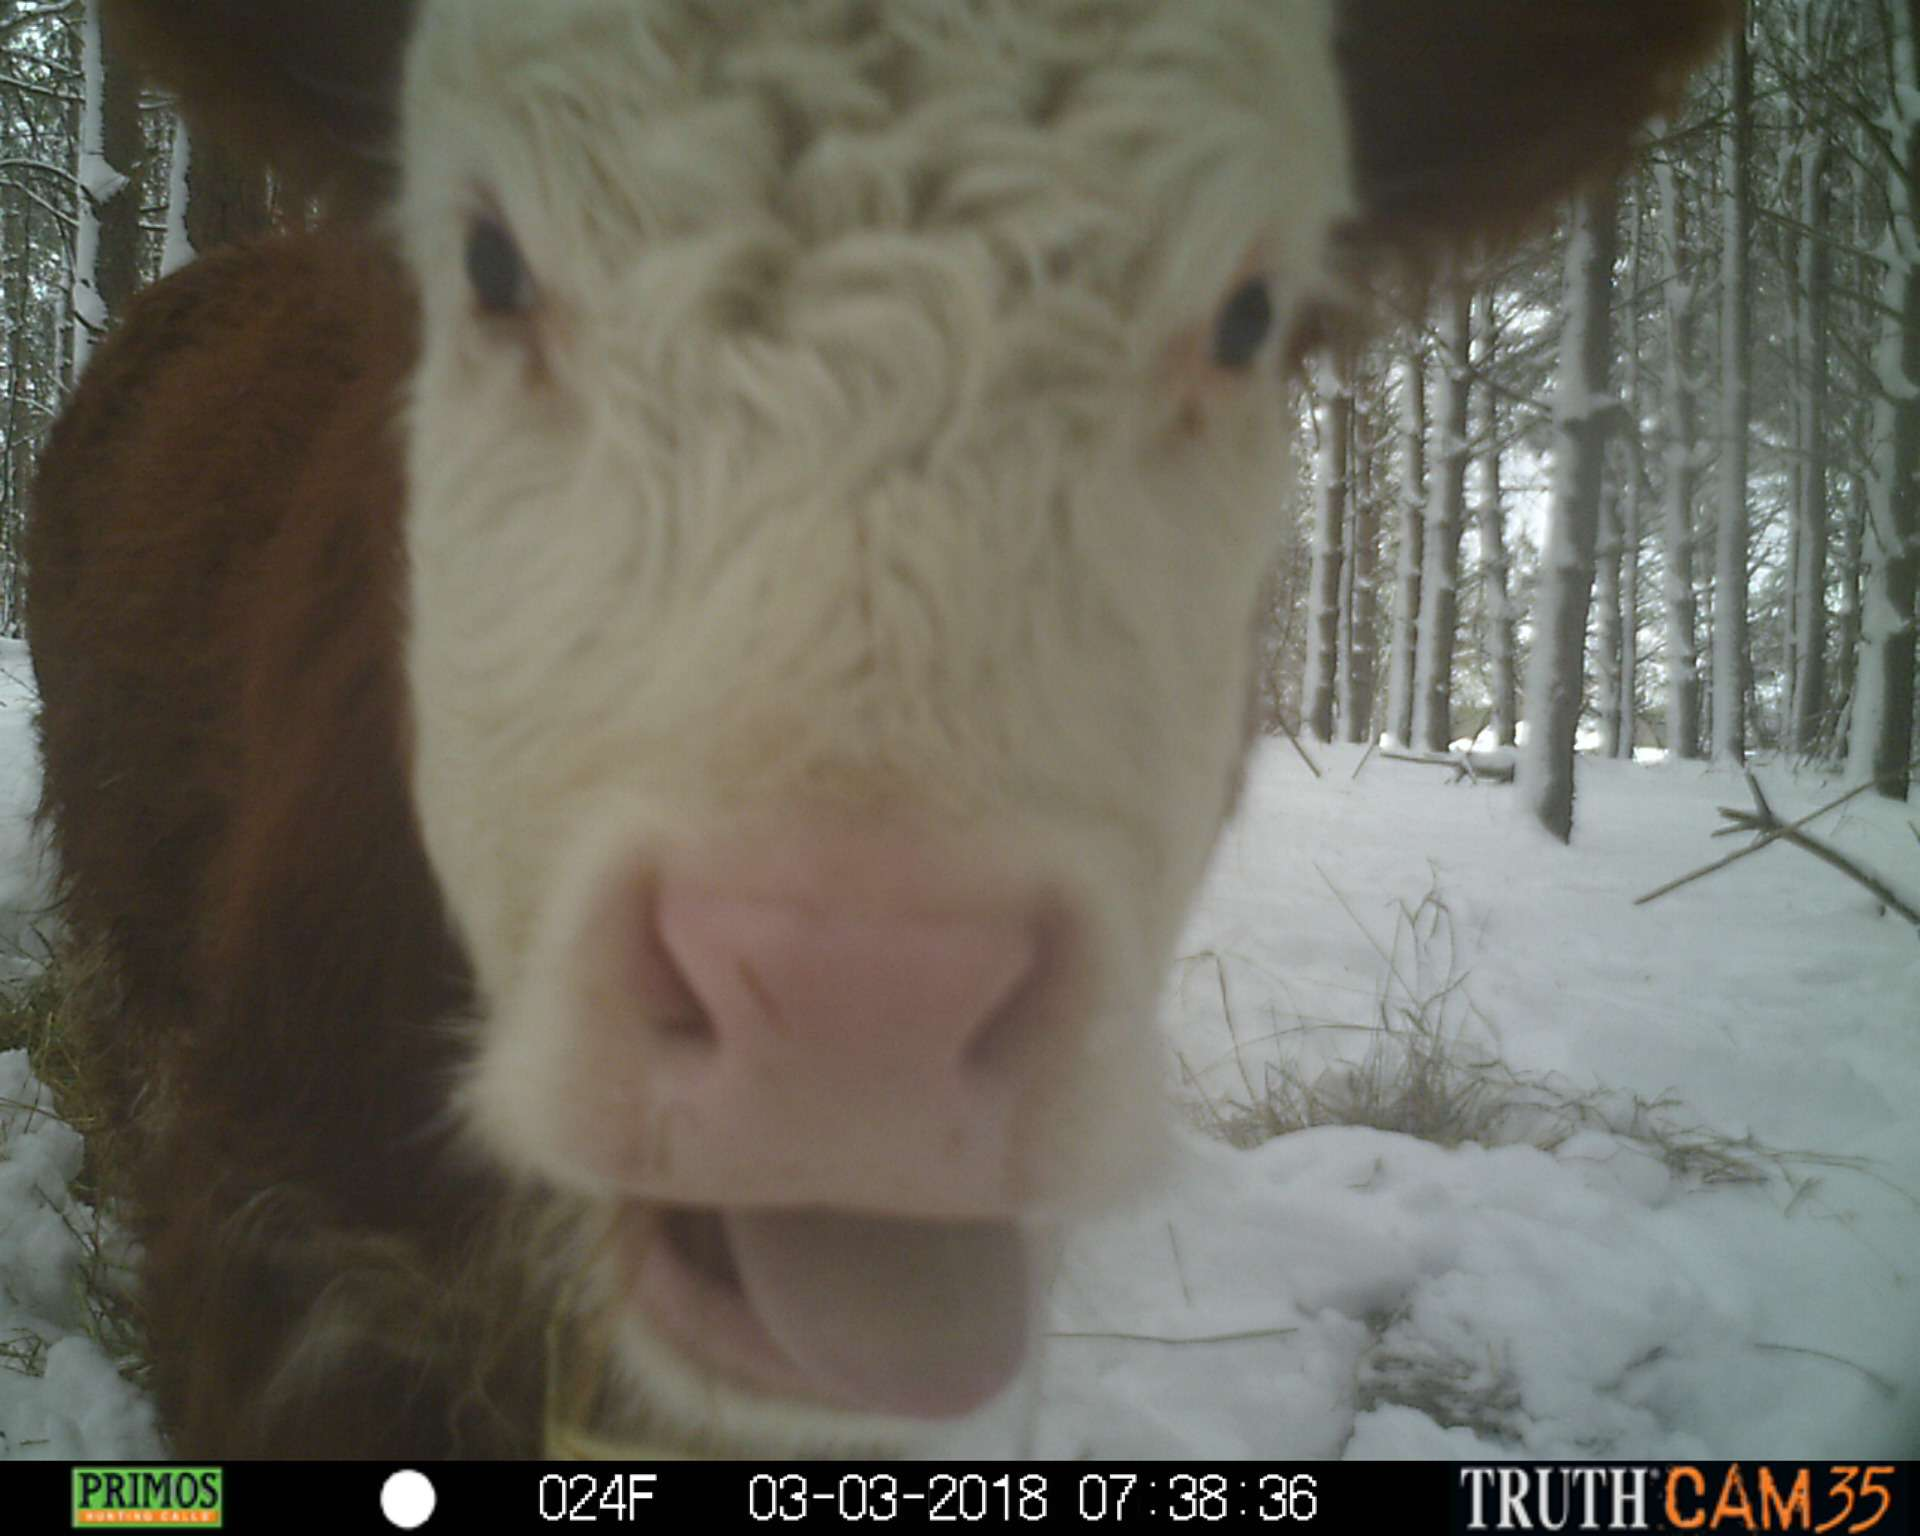 Bonnie the calf in the woods